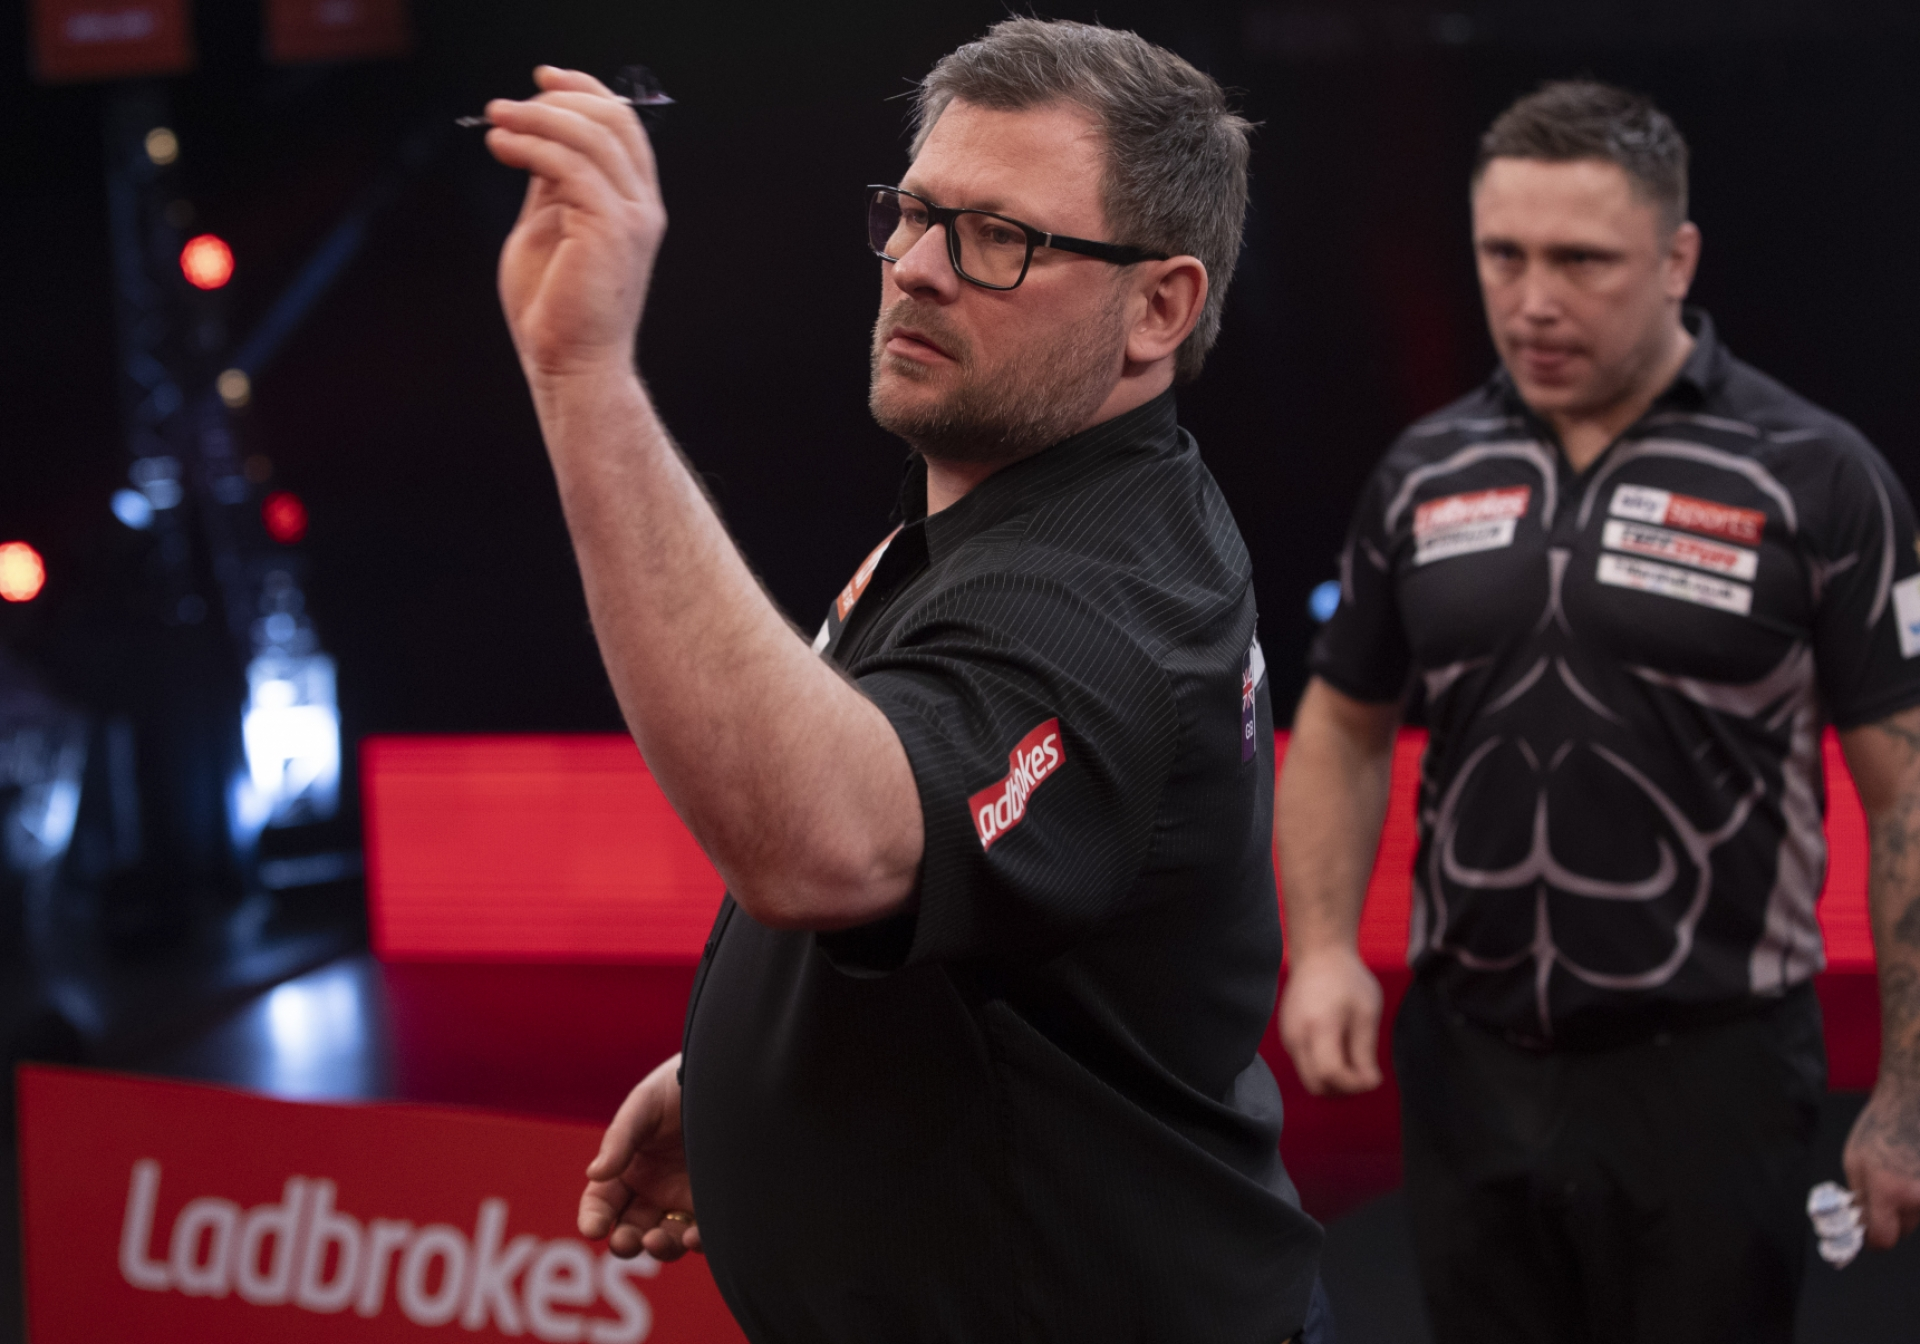 James Wade vs Gerwyn Price